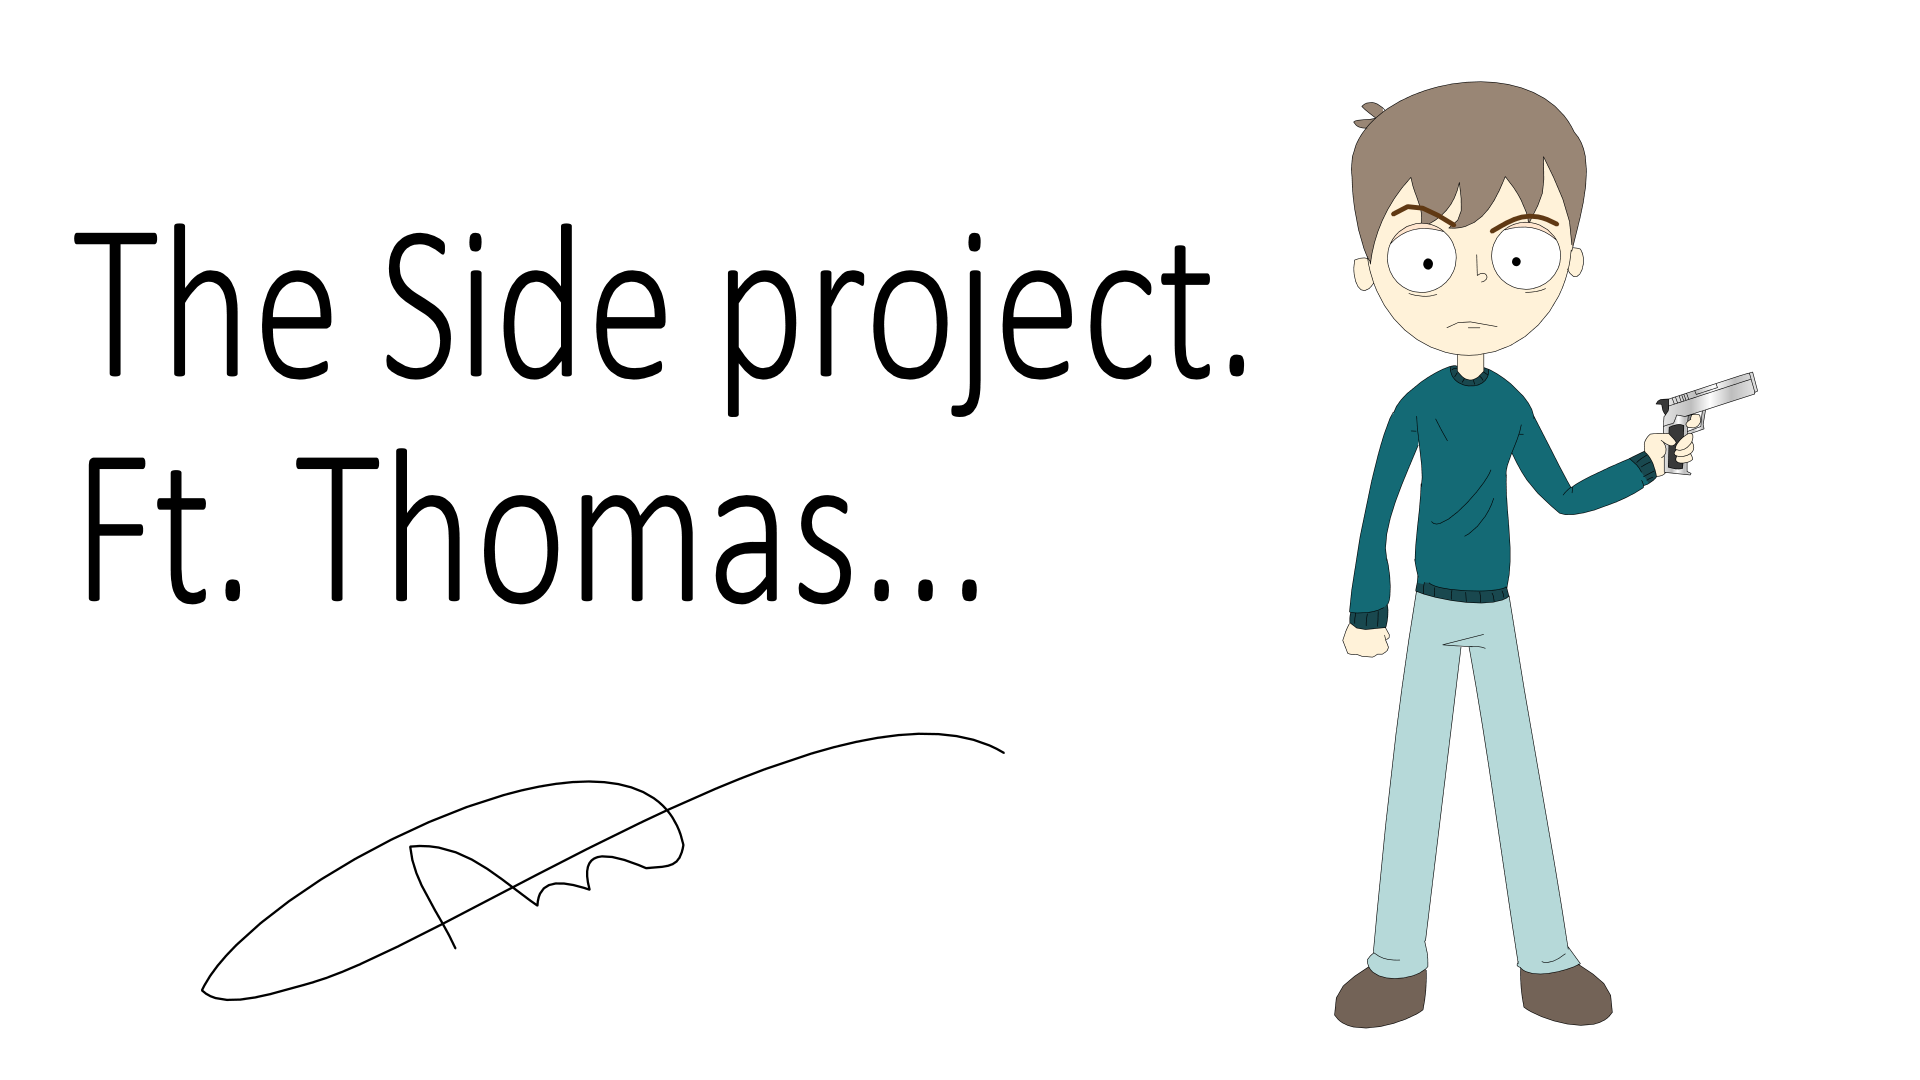 The side project: Ft Thomas